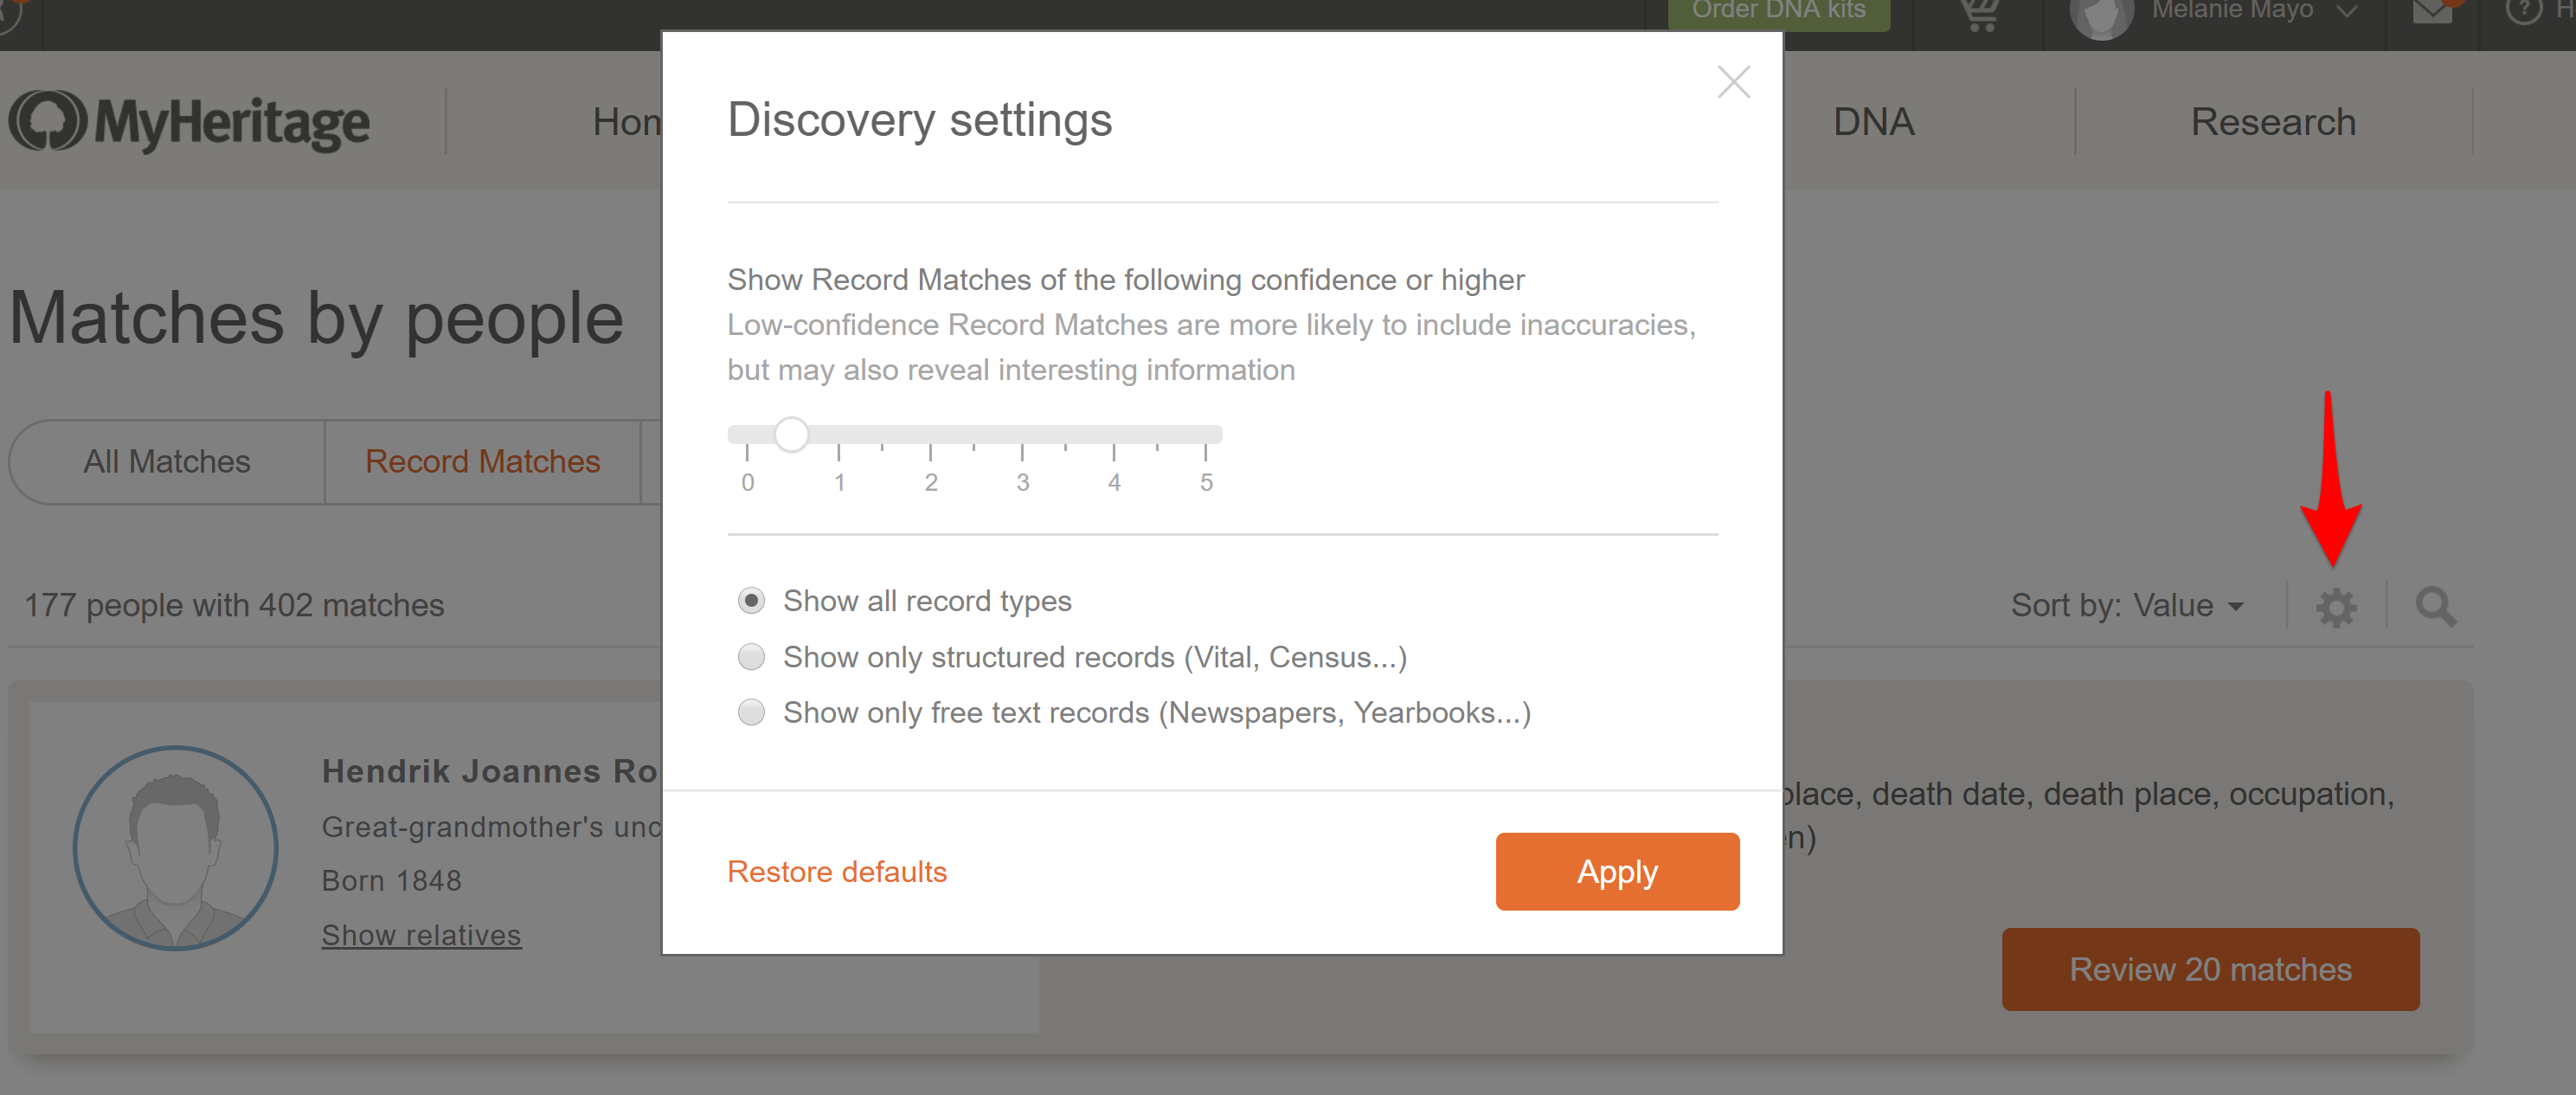 Discovery Settings